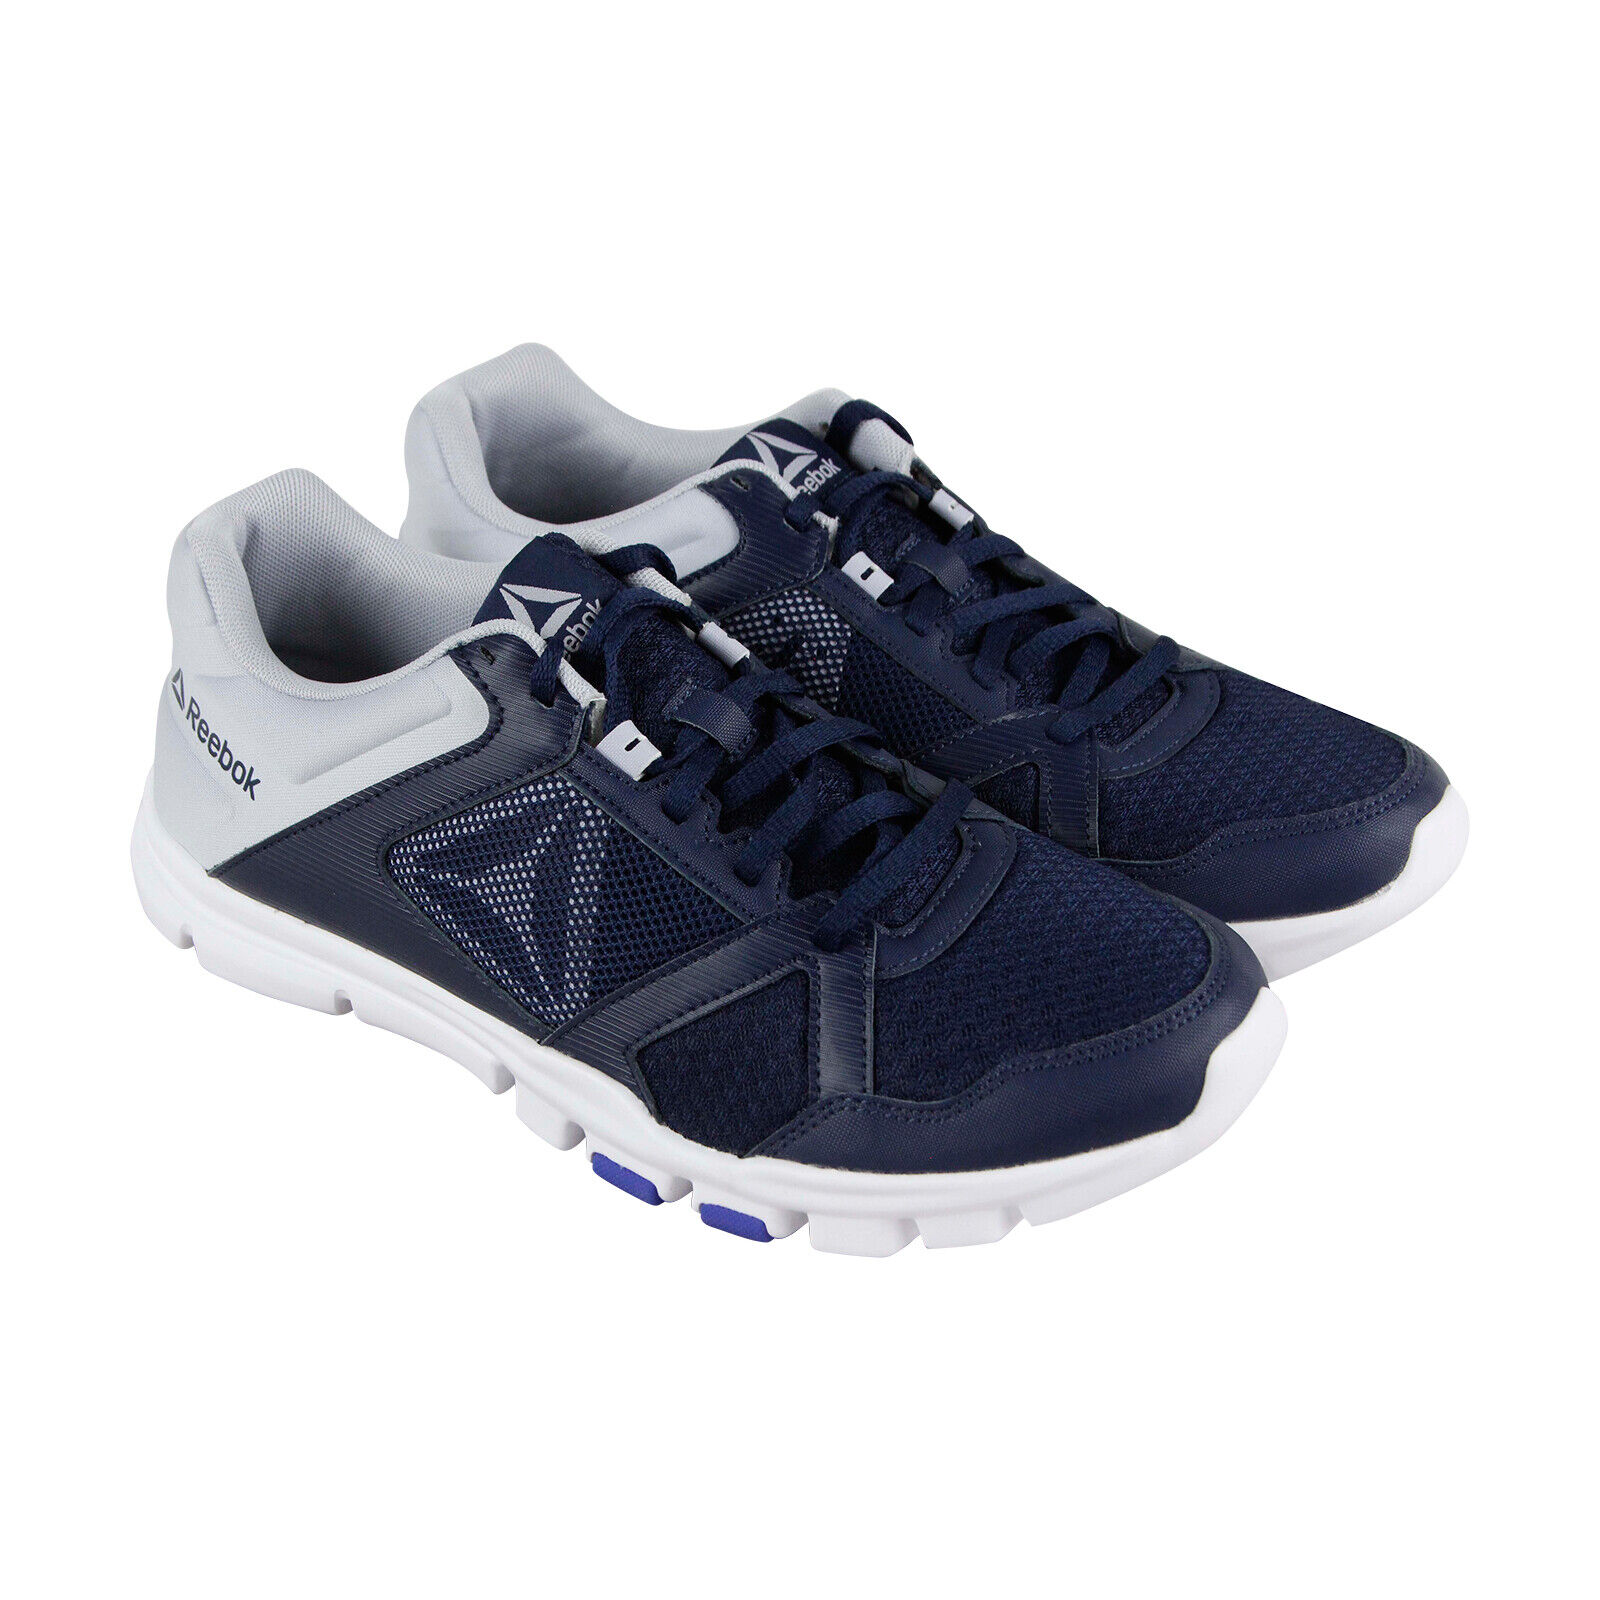 Reebok  Tennis Yourflex Train 10 Mt Mens bluee Low Top Gym Cross Training shoes  exciting promotions